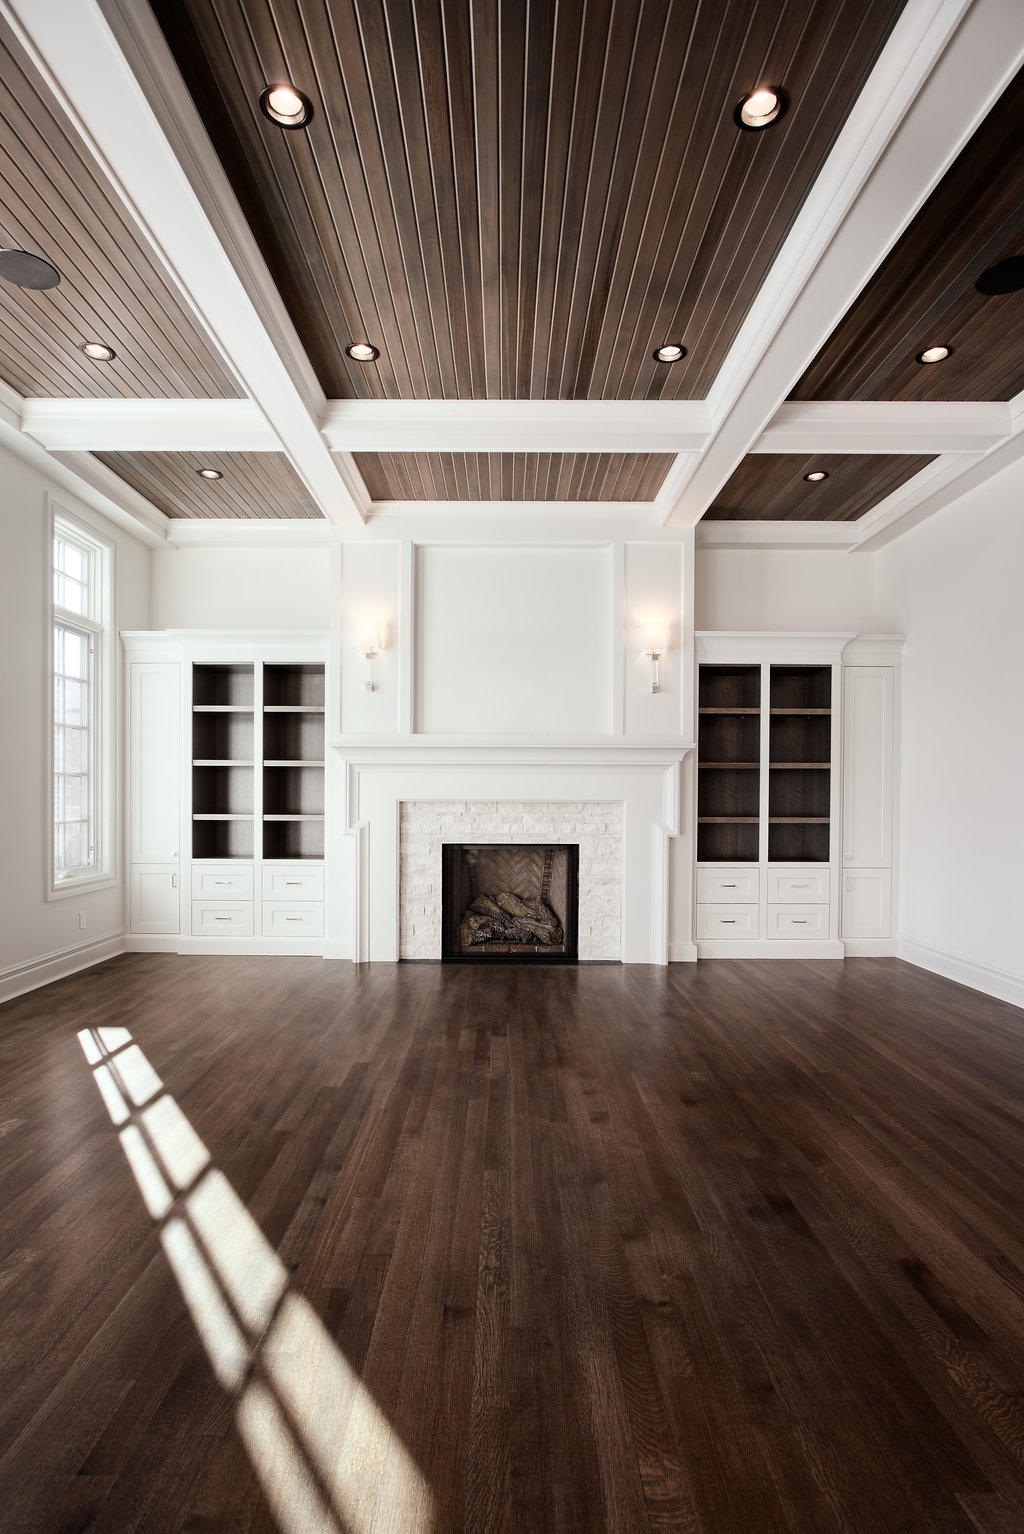 Crown moulding and beautiful matching fireplace with shelving surround